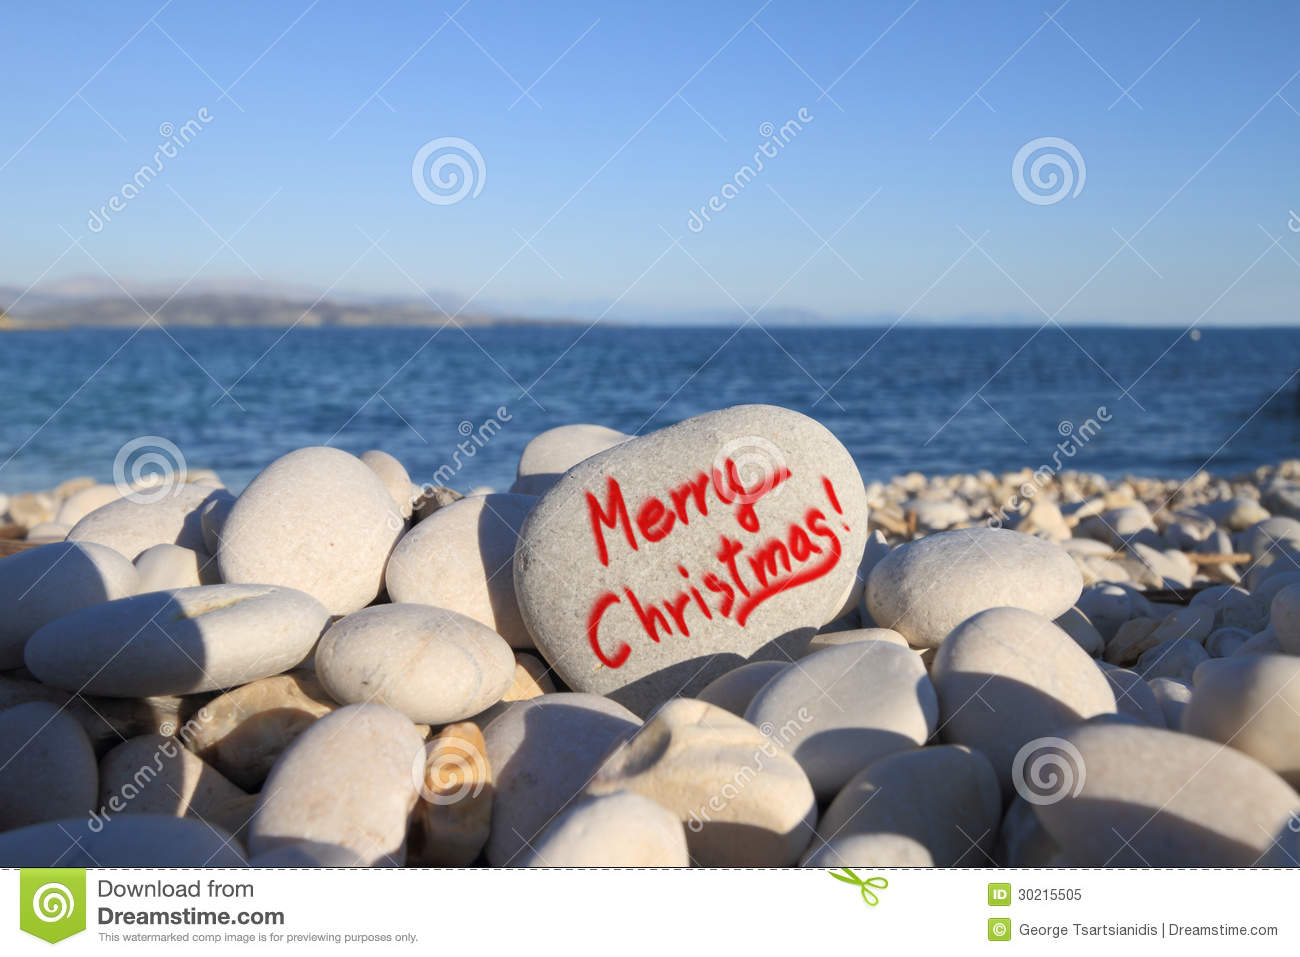 Merry Christmas Beach Images